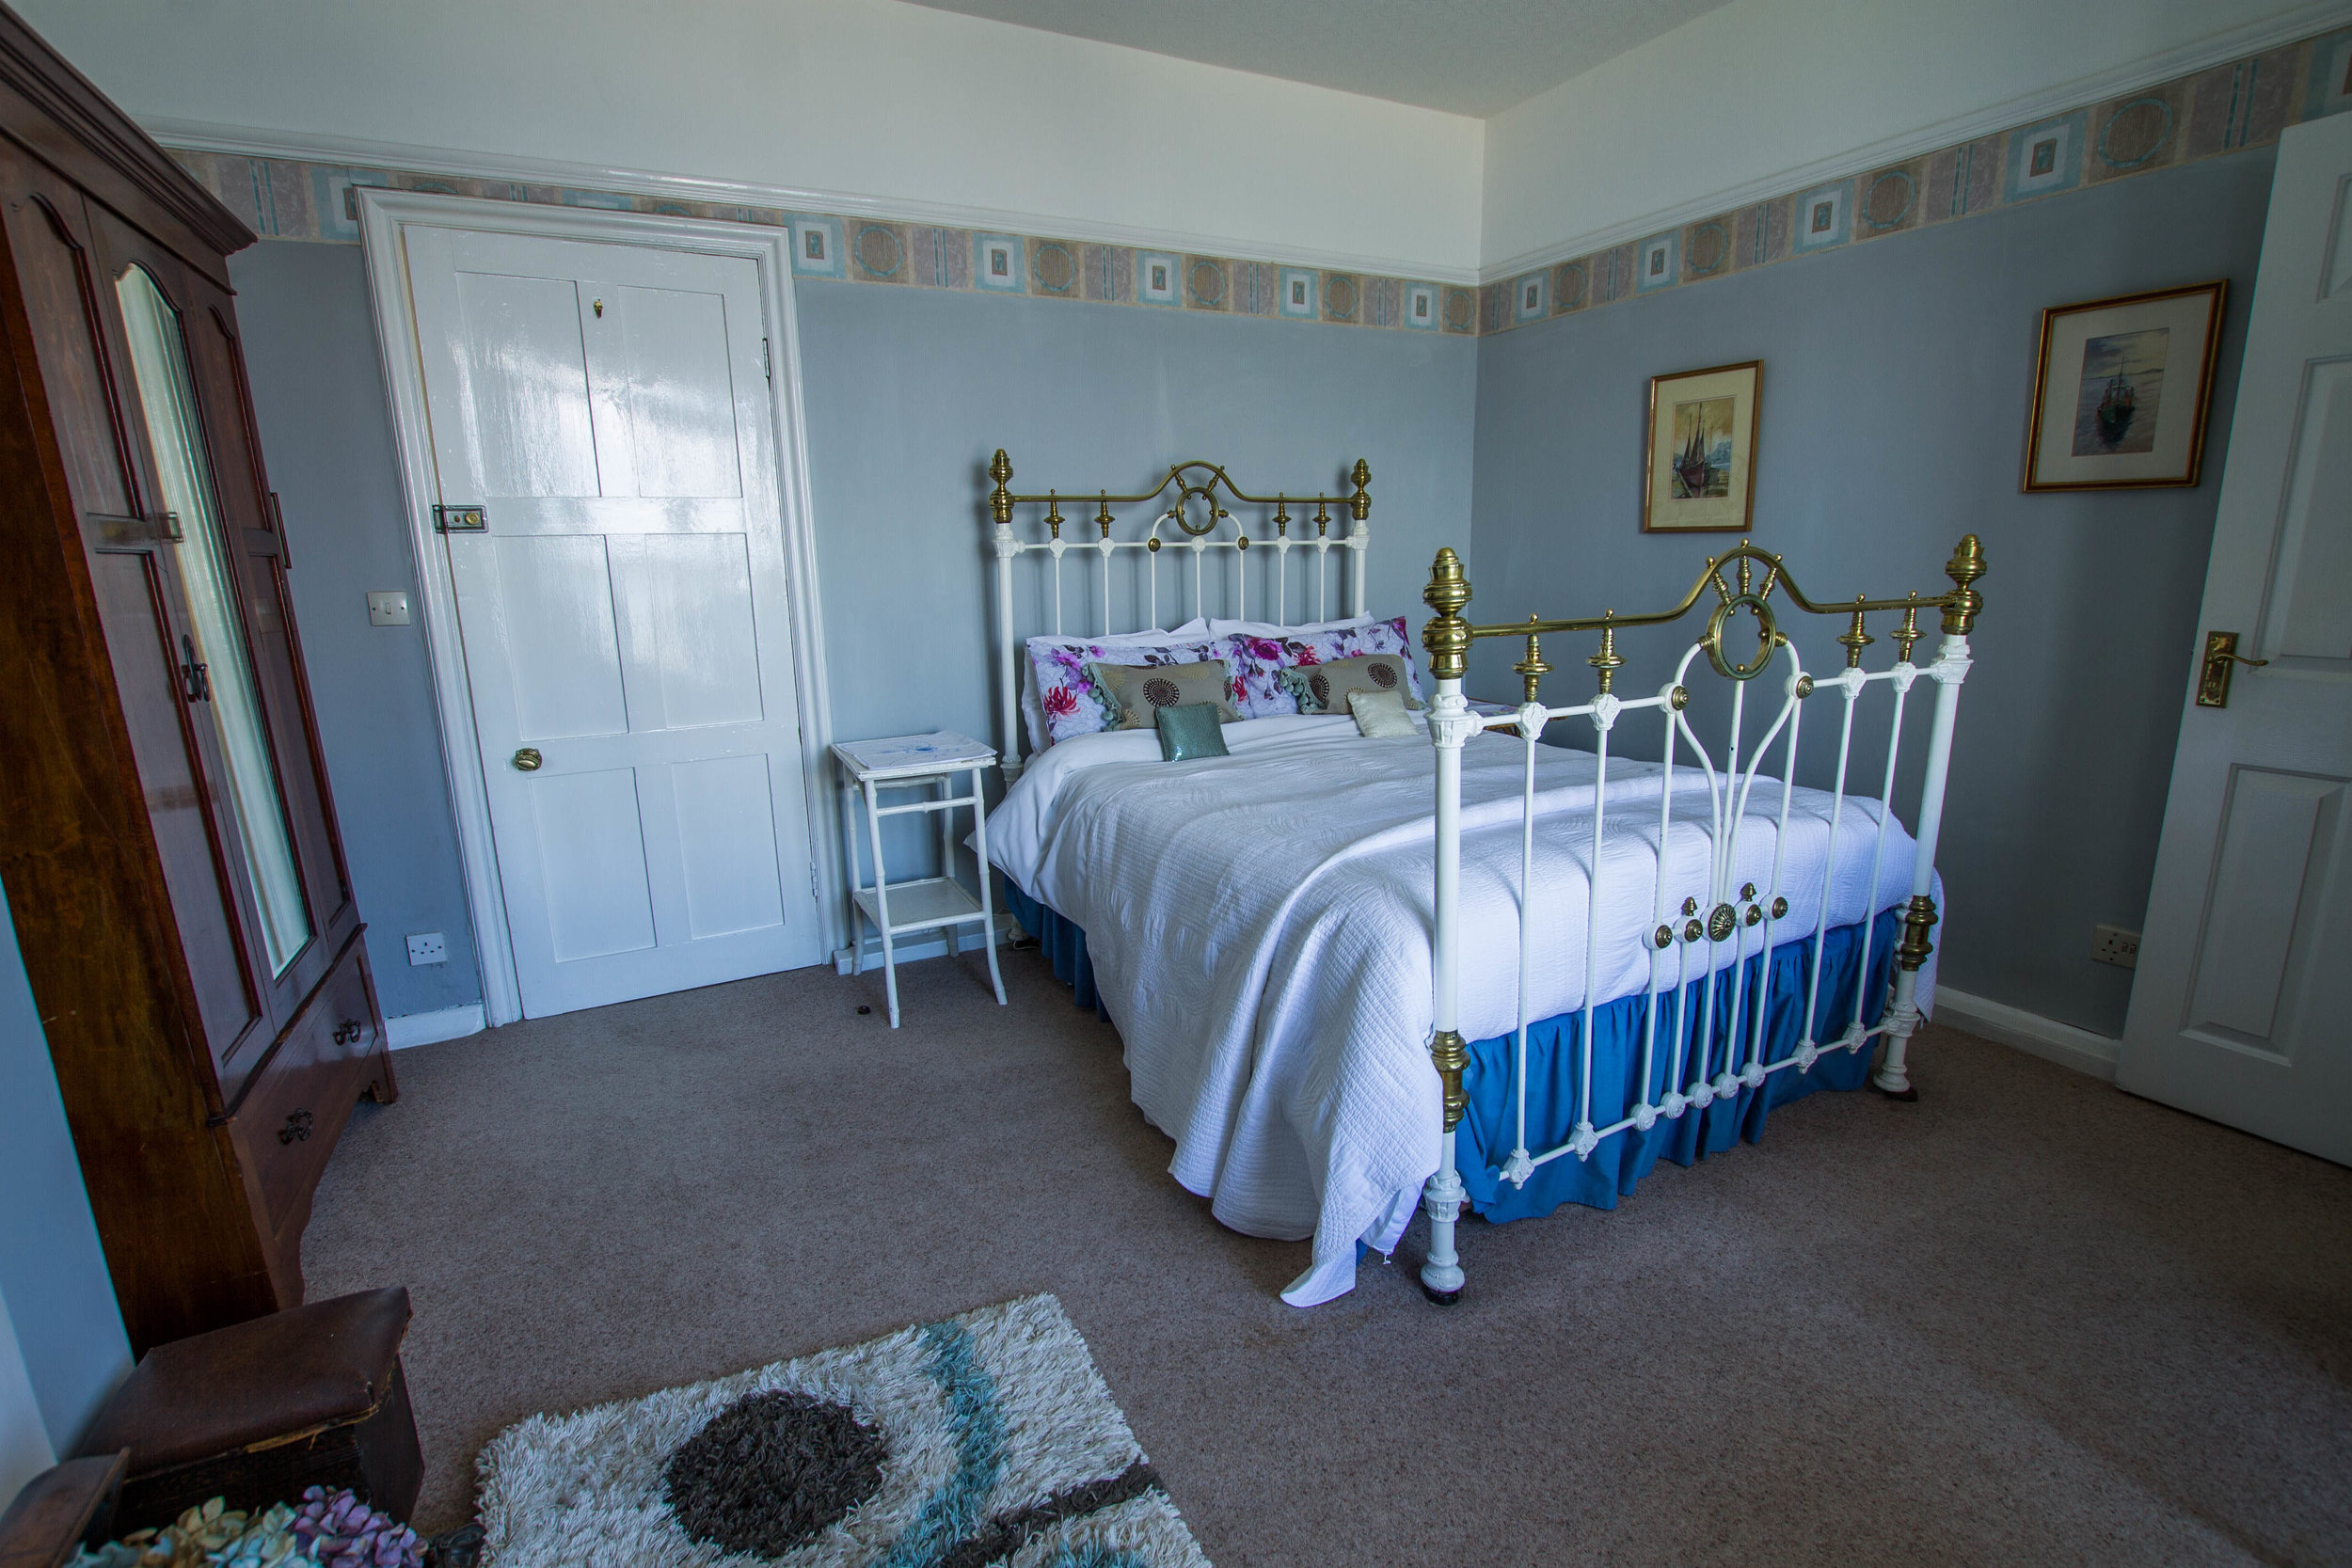 Our spacious double bedroom with beach views and balcony